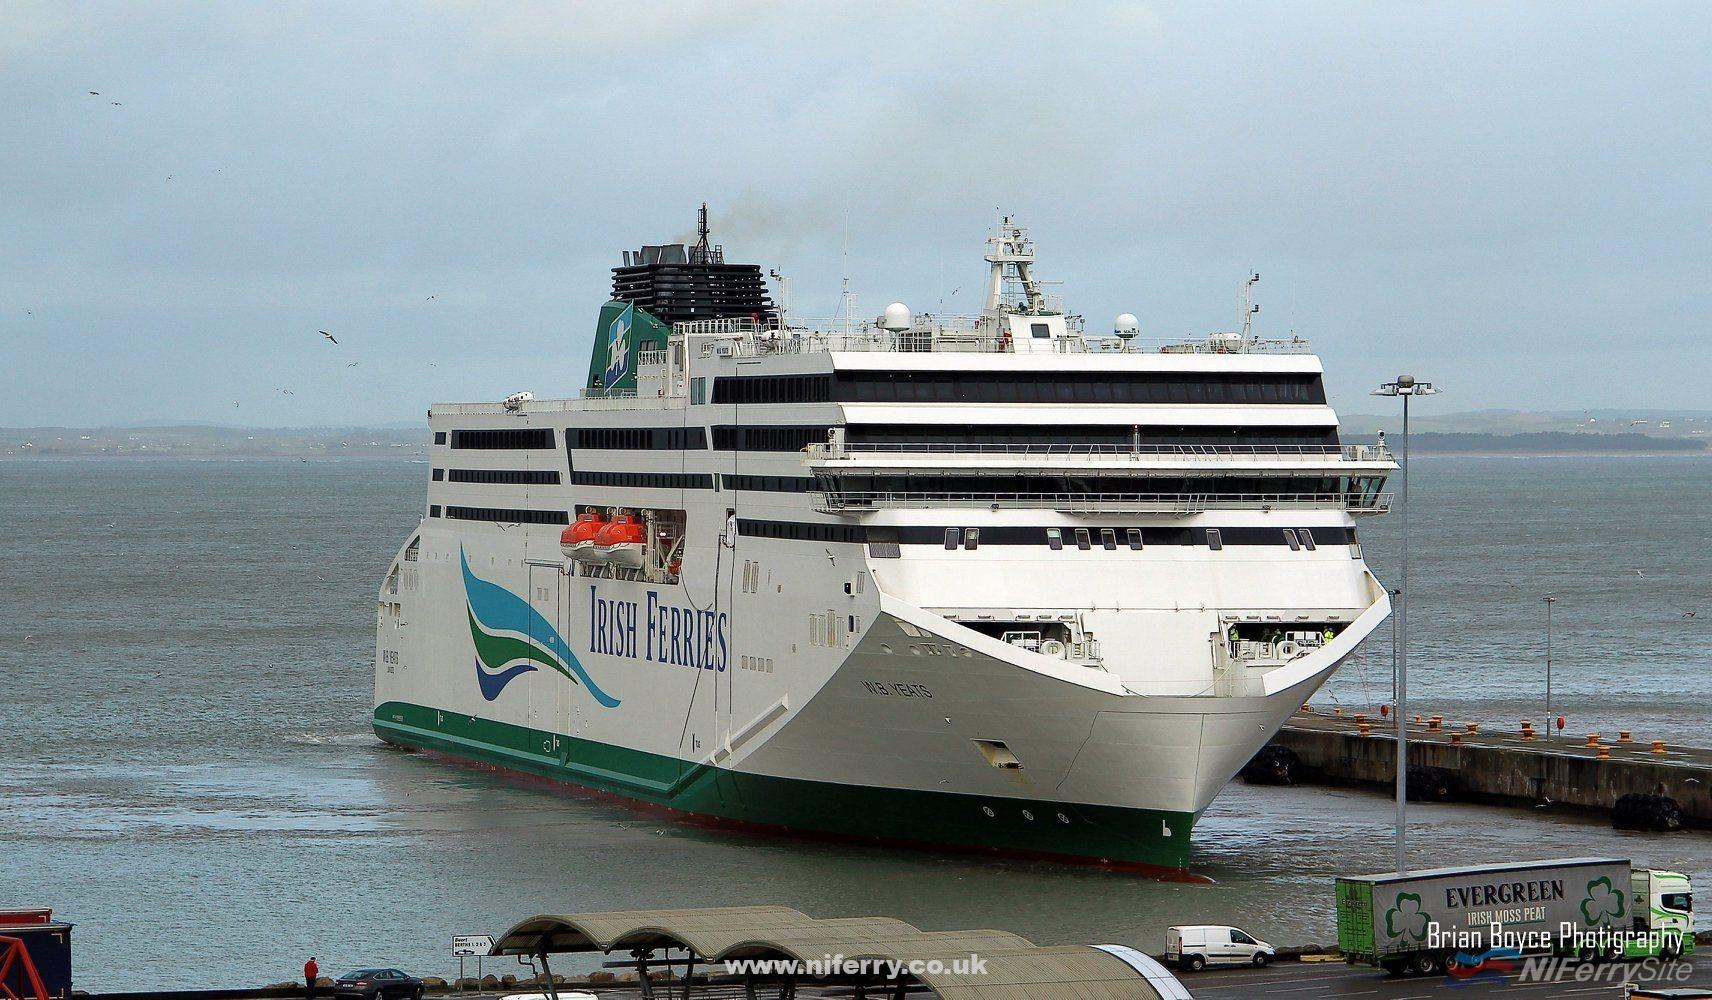 Irish Ferries W. B. YEATS arrives in Rosslare for the first time on 19th December 2018 for berthing trials. Copyright © Brian Boyce.